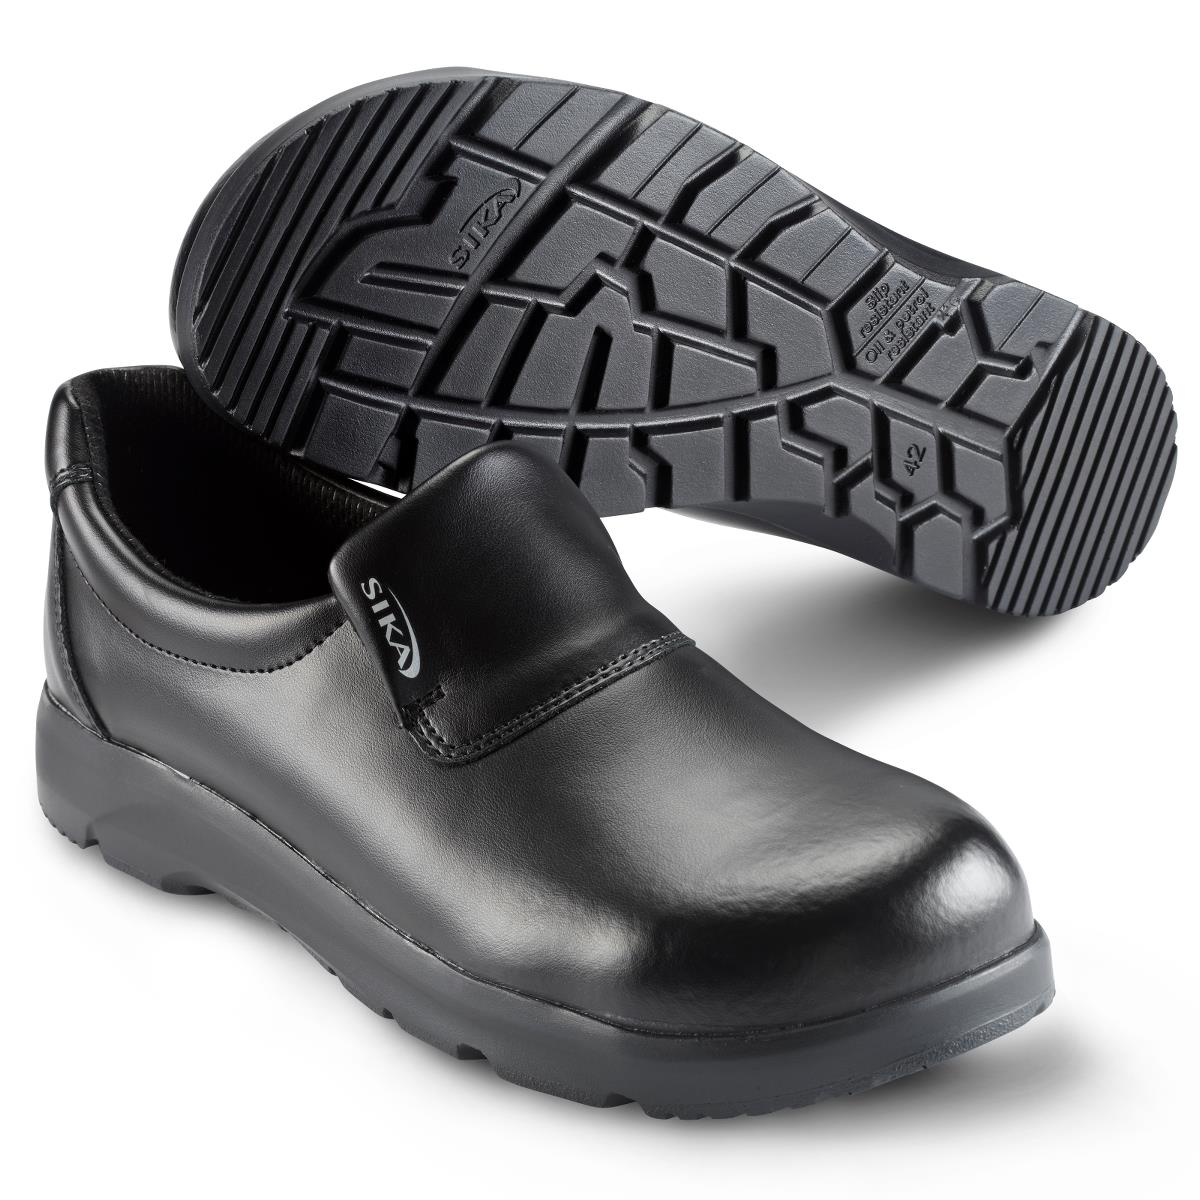 Sika Optimax Slip On Safety Shoe 172111